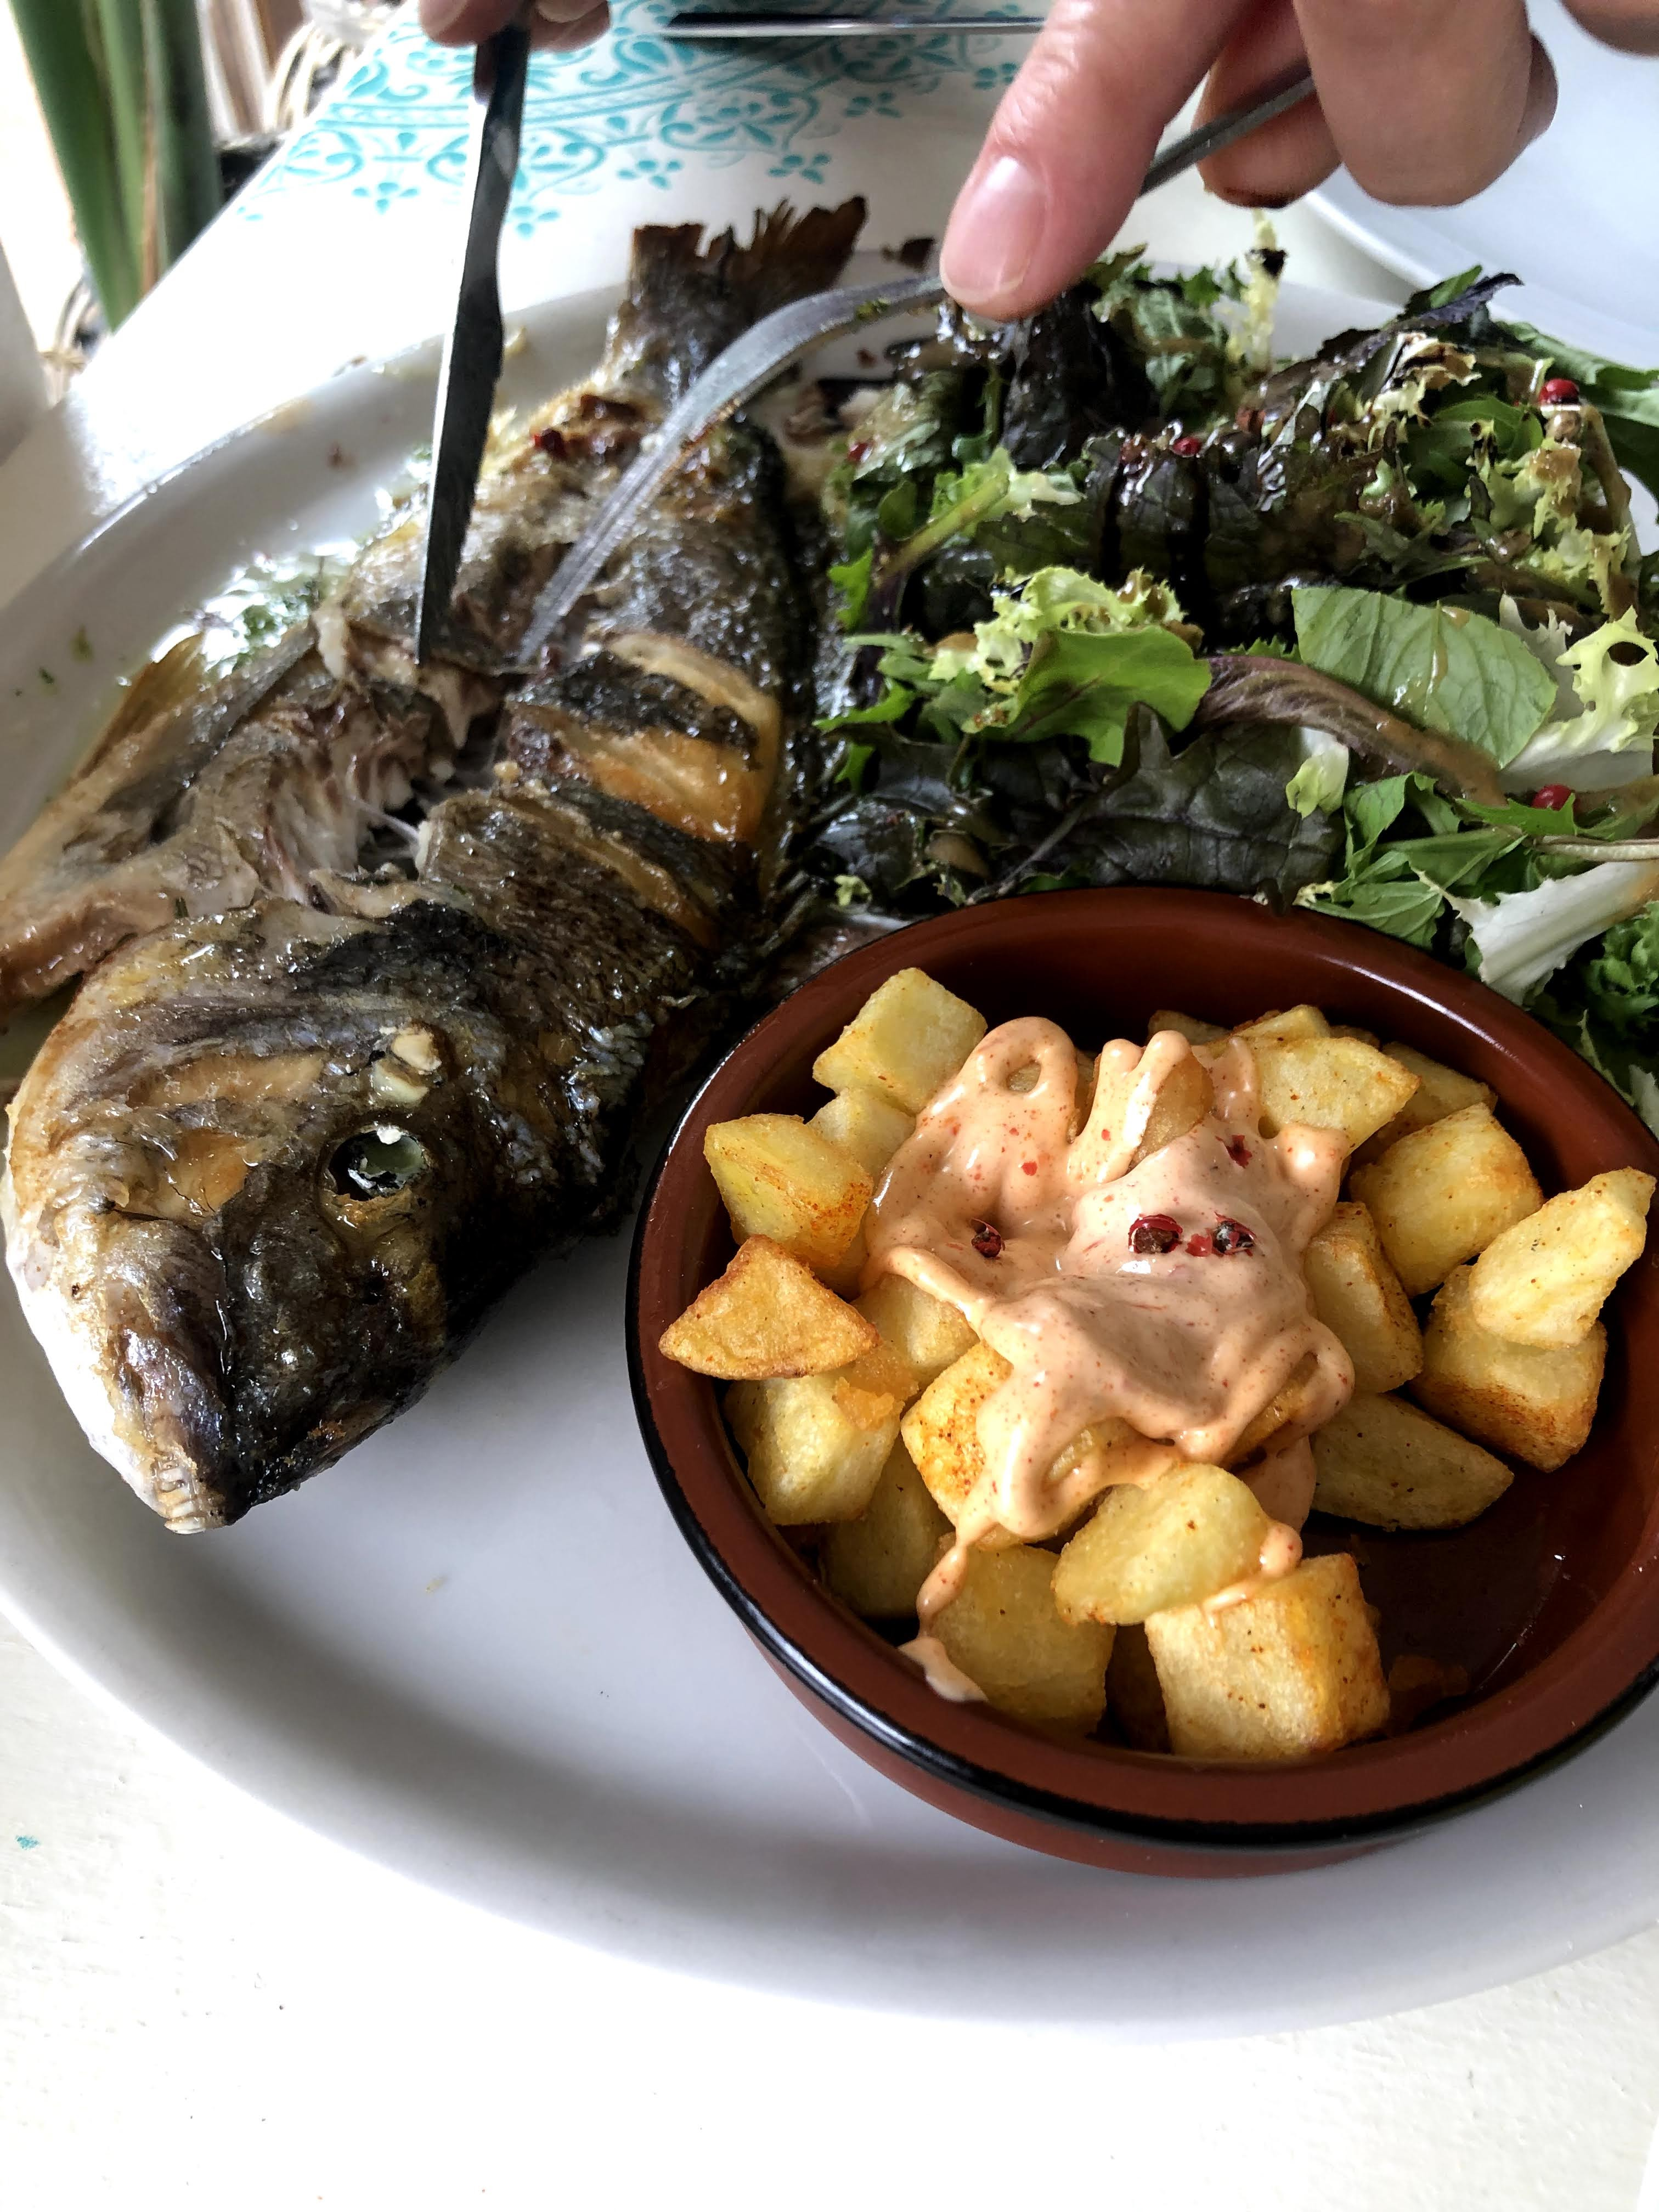 grilled fish with potatoes and salad